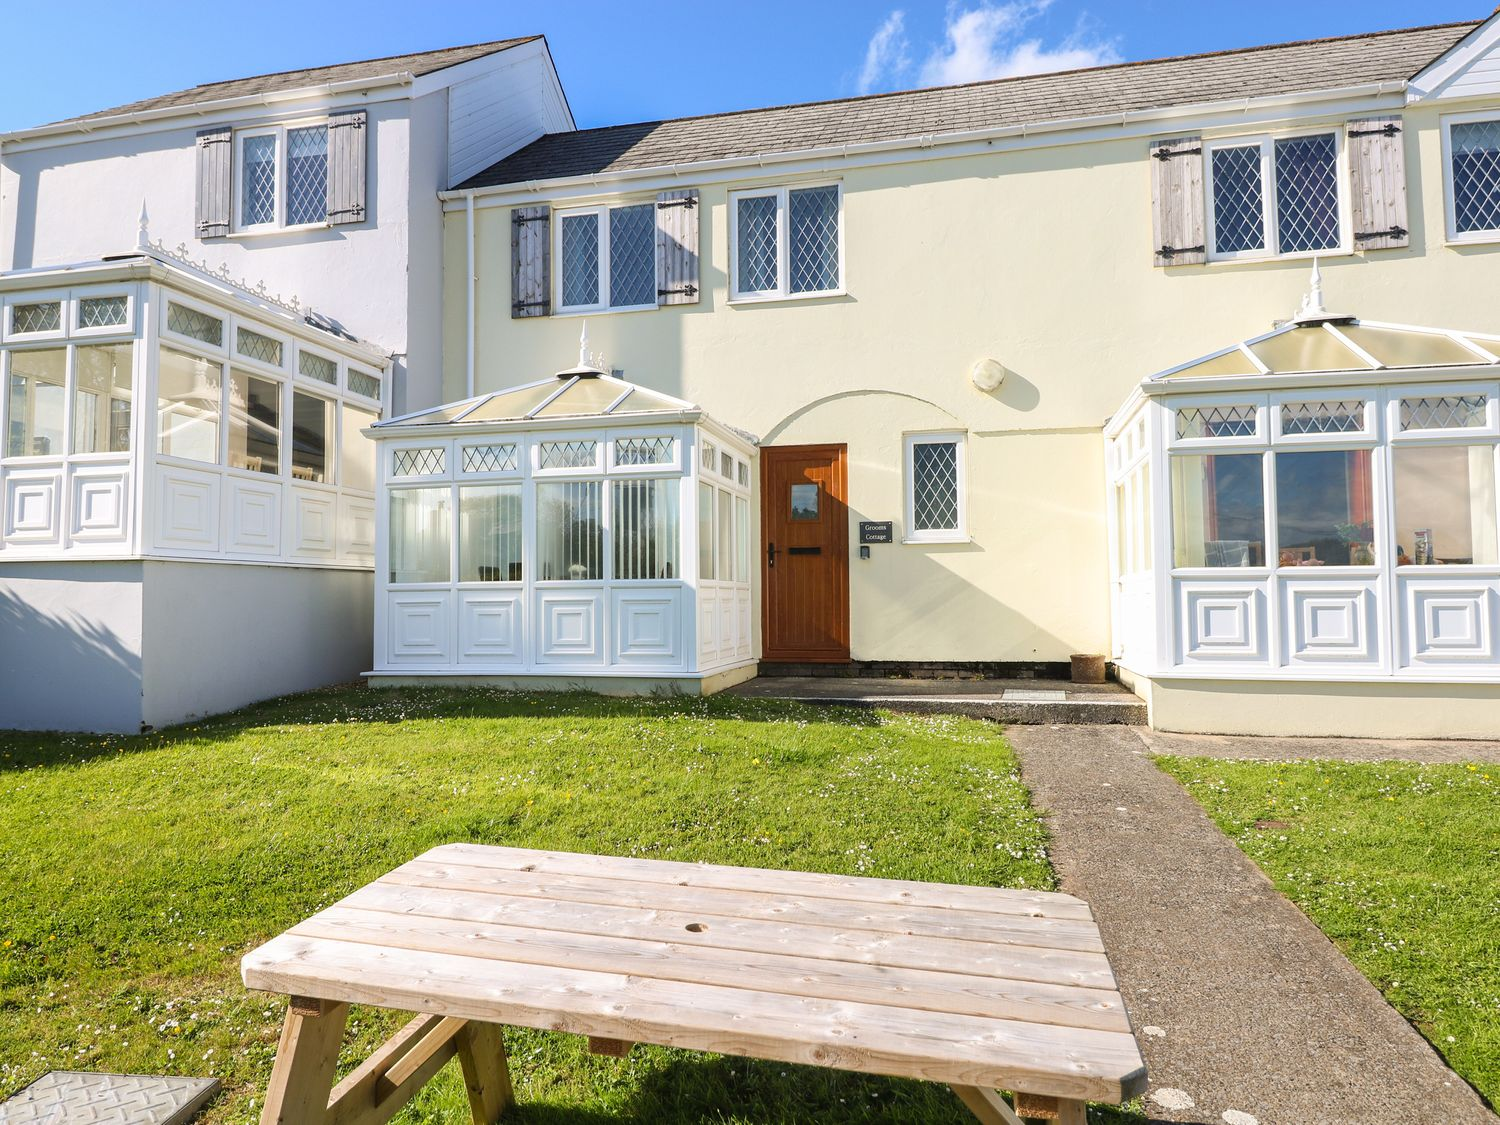 Grooms Cottage - South Wales - 1066752 - photo 1